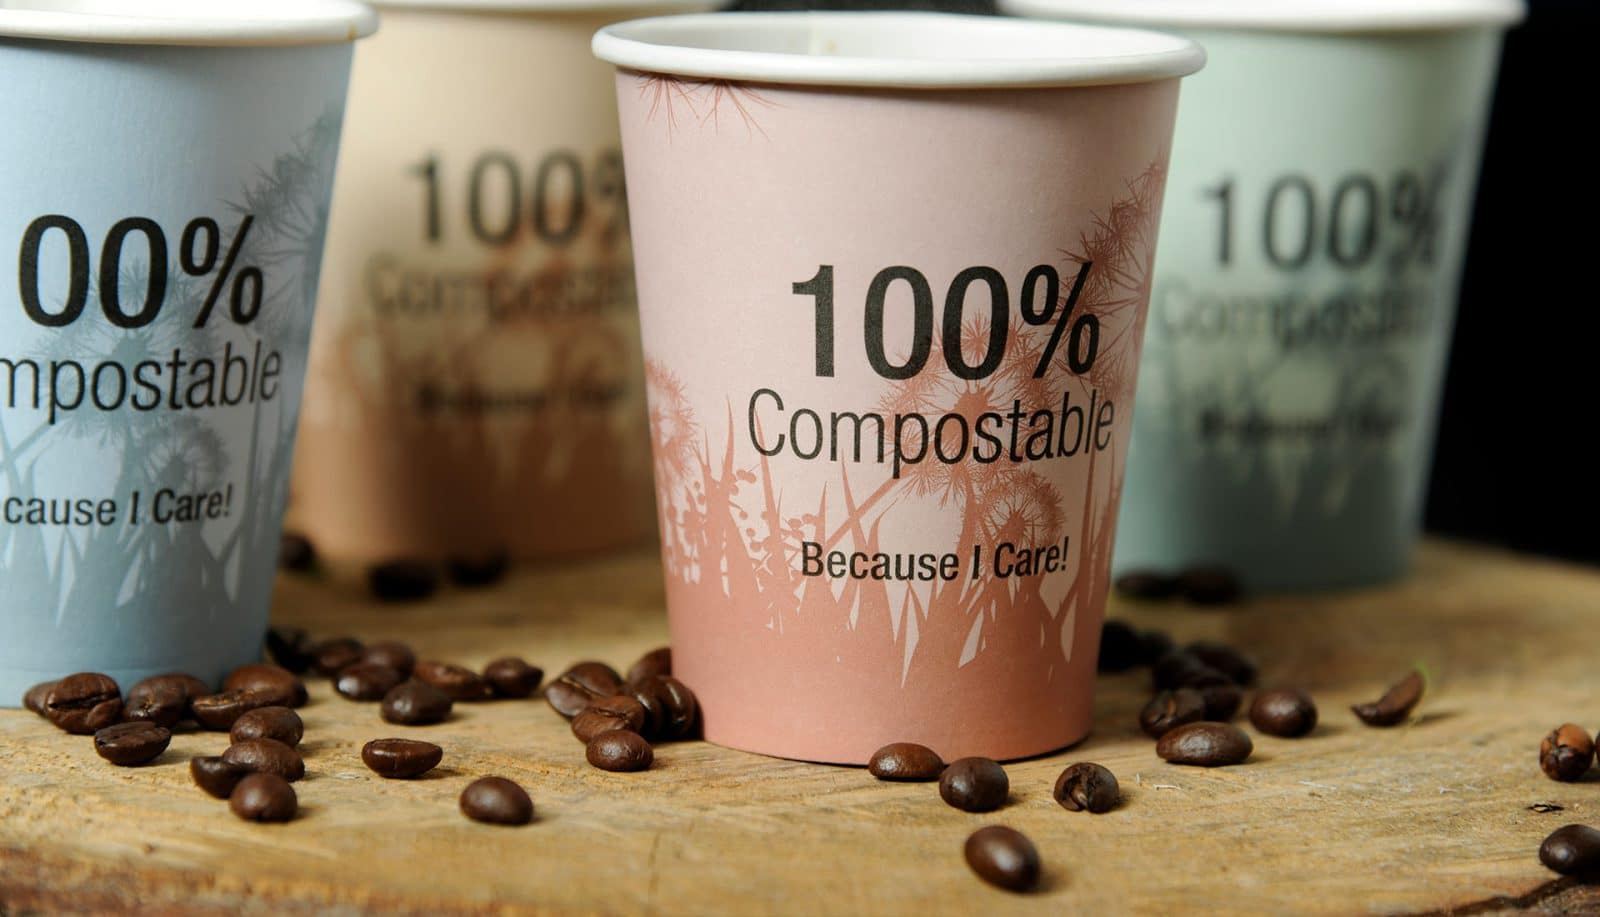 koffiebekers producent private label